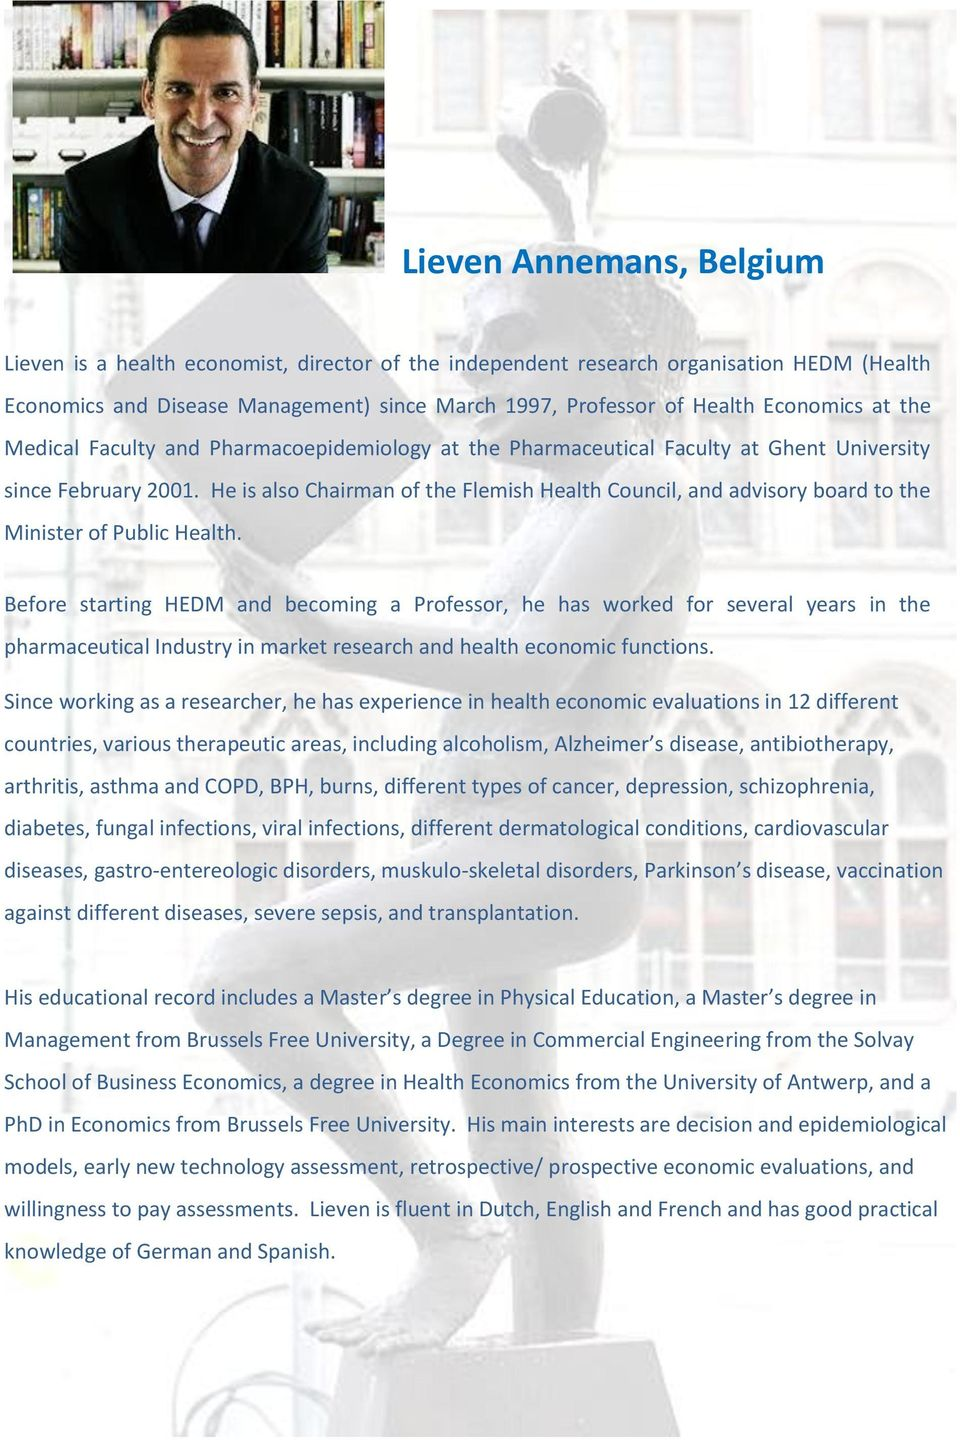 He is also Chairman of the Flemish Health Council, and advisory board to the Minister of Public Health.